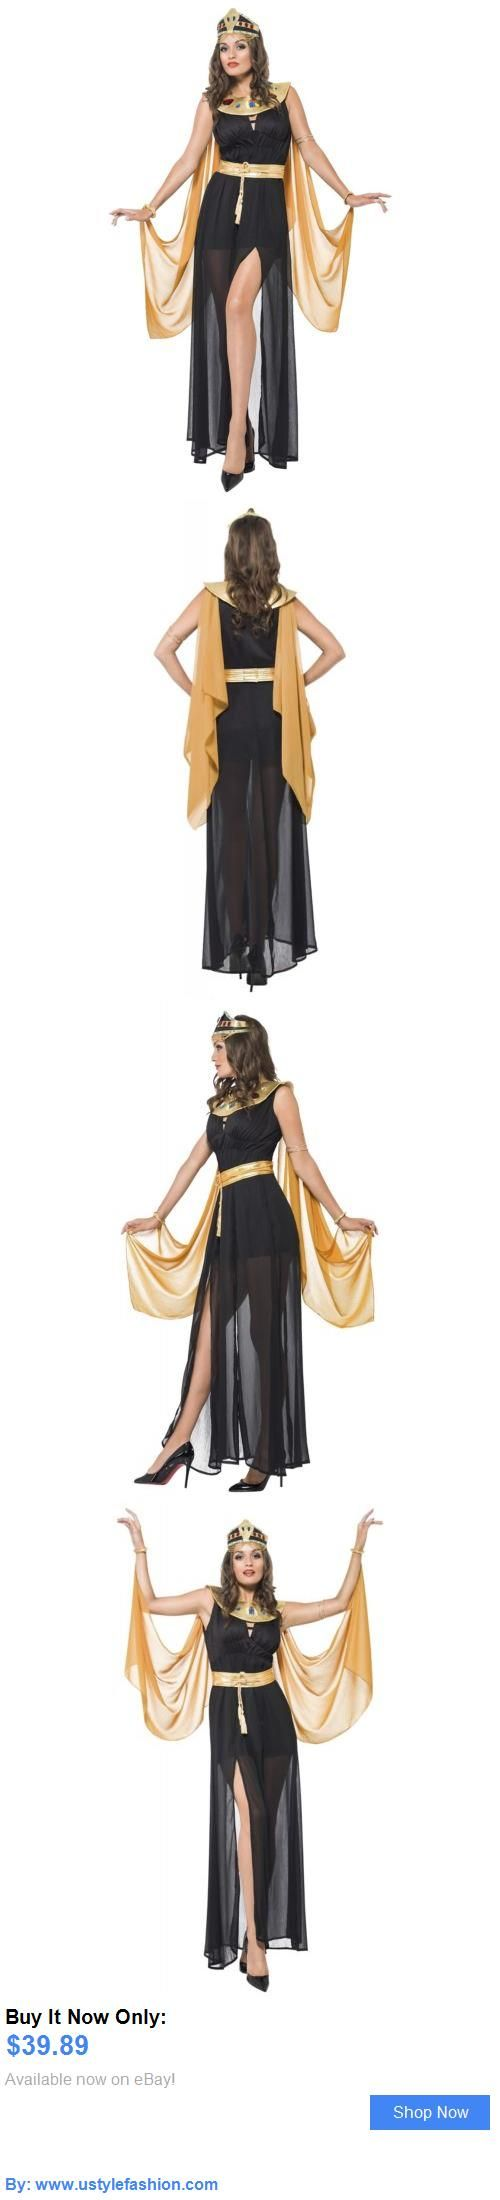 Costumes and reenactment attire: Cleopatra Costume Adult Egyptian Queen Halloween Fancy Dress BUY IT NOW ONLY: $39.89 #ustylefashionCostumesandreenactmentattire OR #ustylefashion